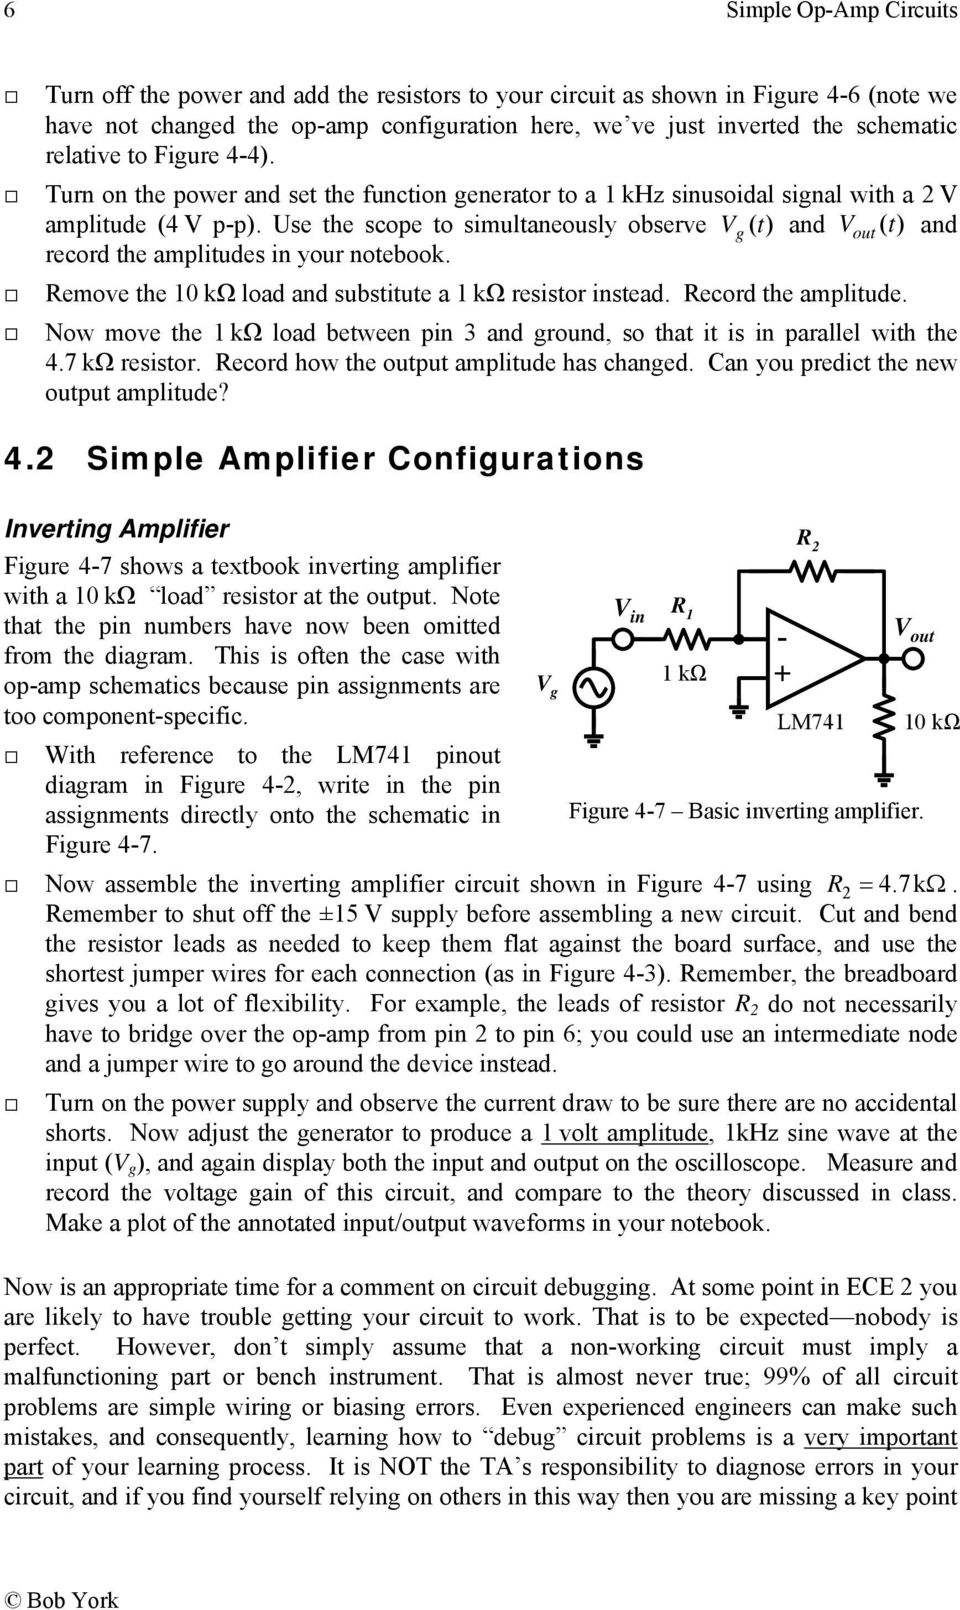 Simple Op Amp Circuits Pdf How To Disable A Single Opamp In Dual Packaging Use The Scope Simultaneously Observe Vg T And Vout